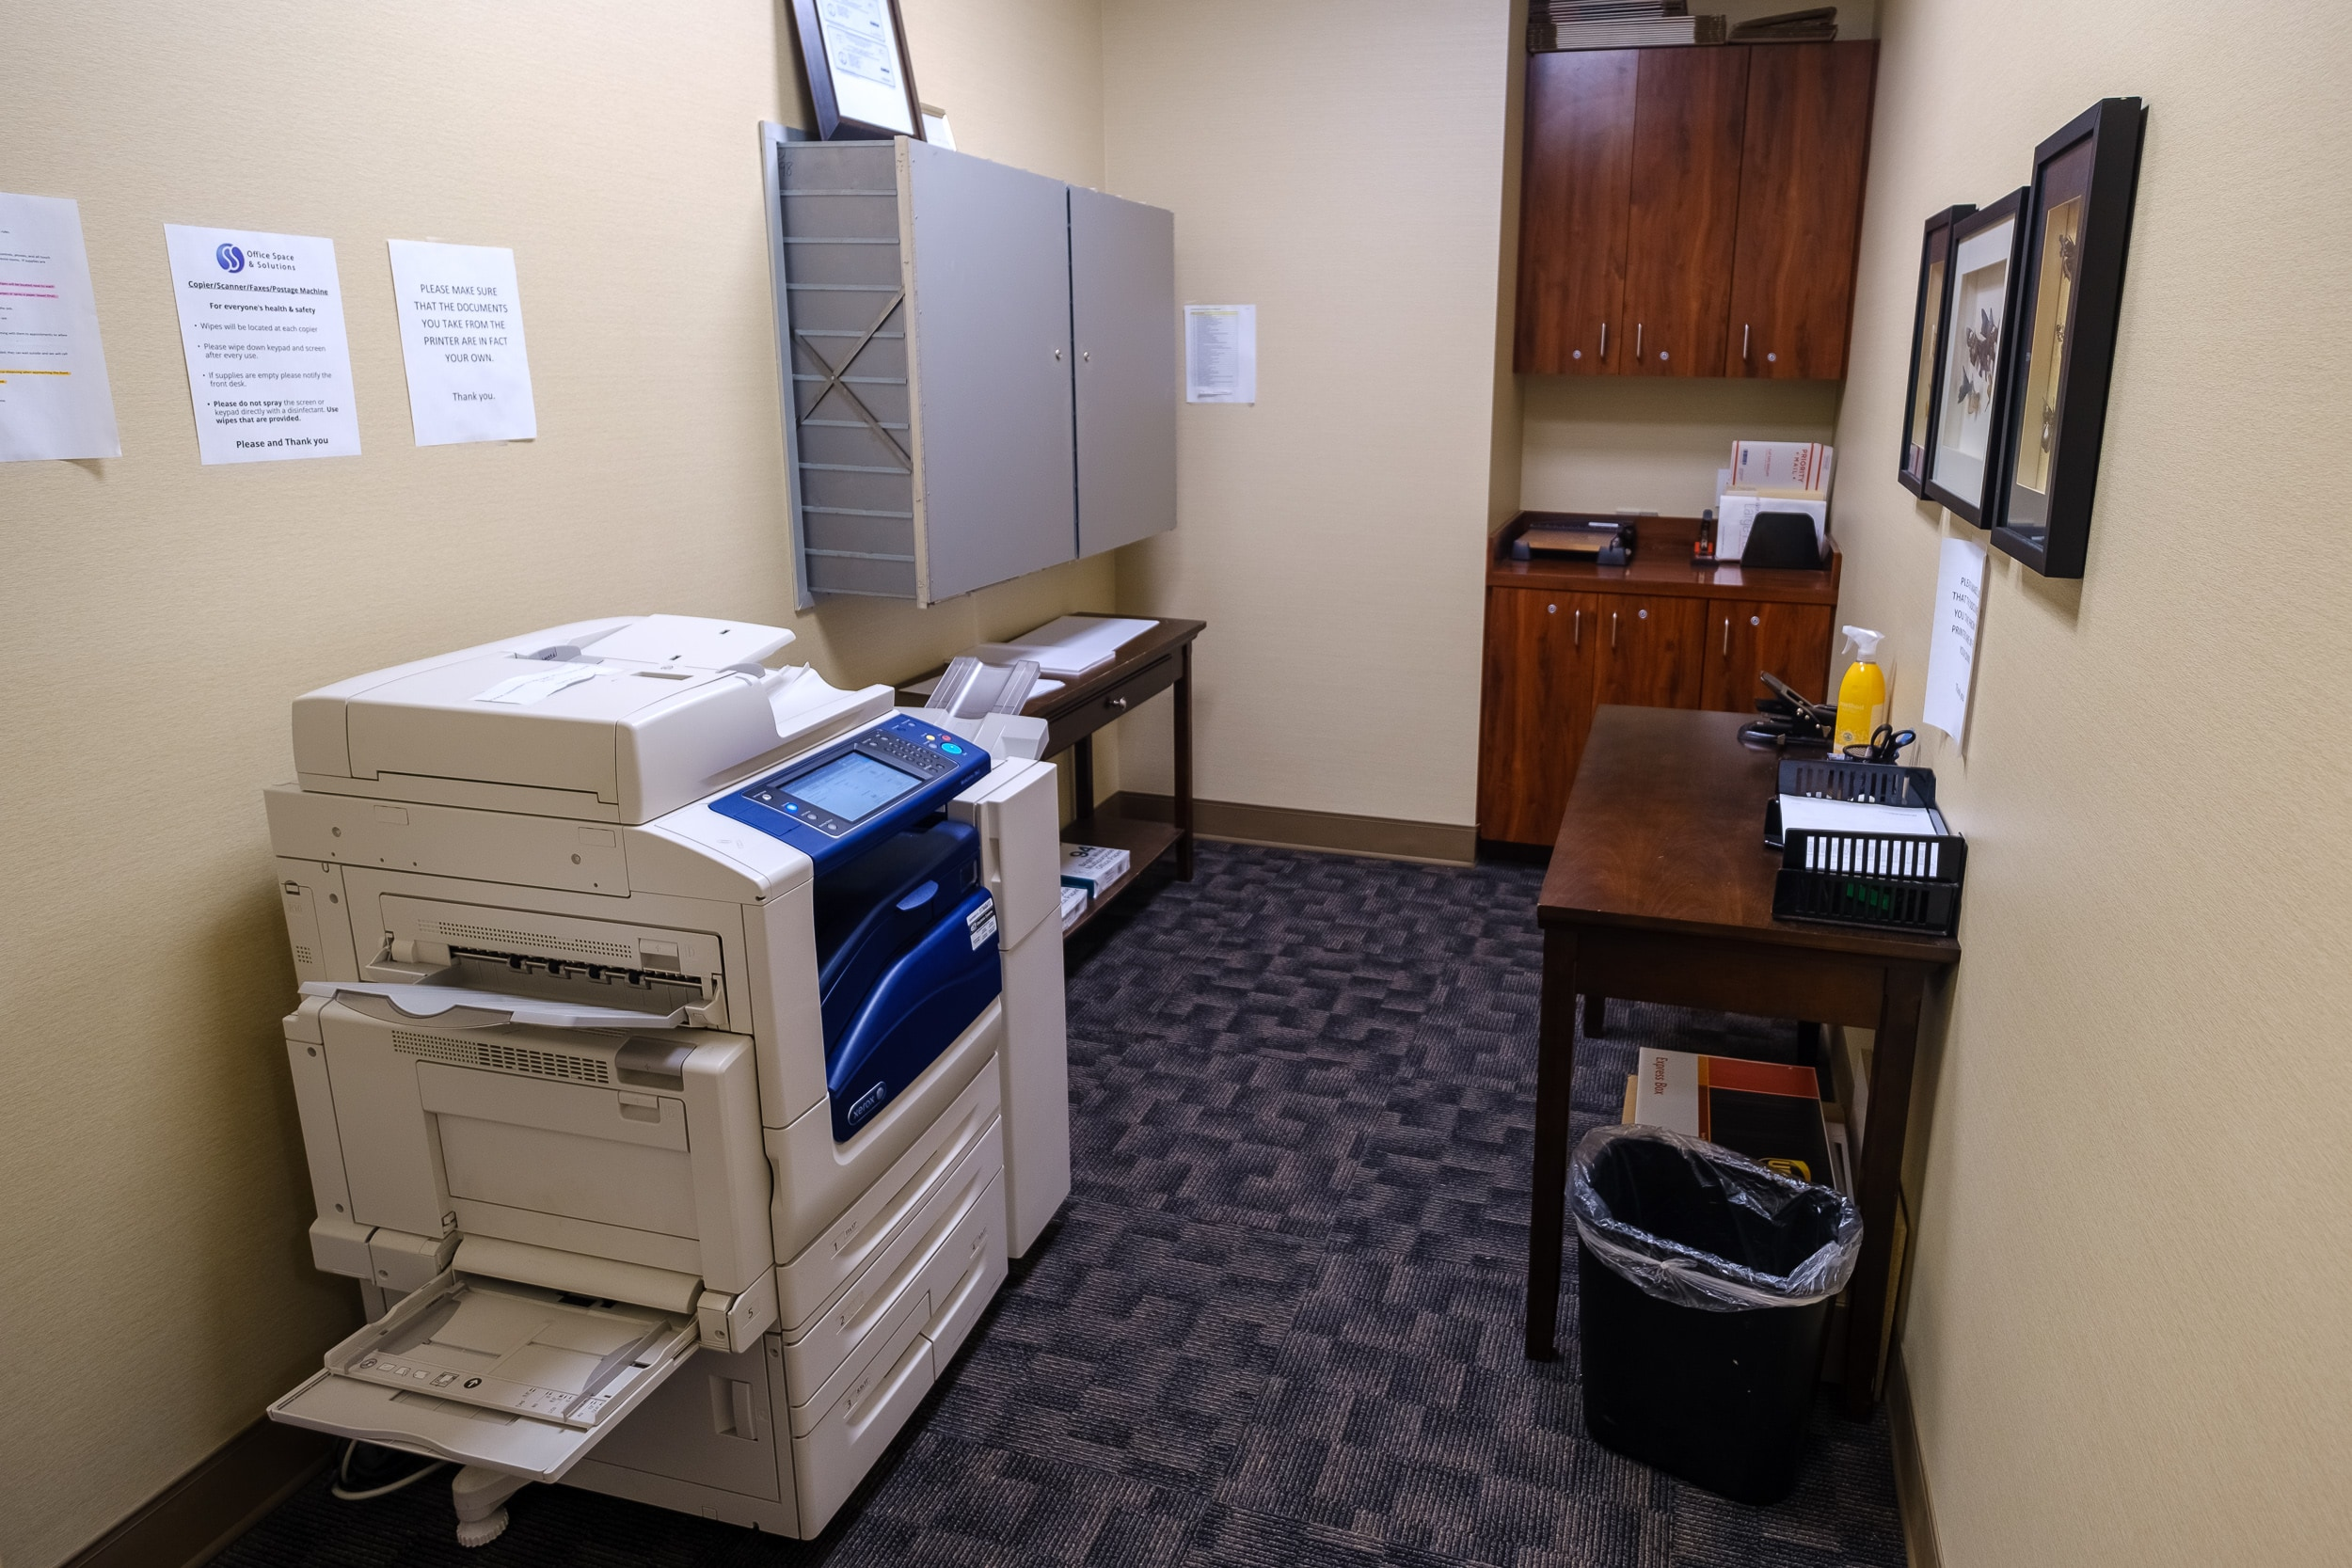 OSS Administrative Services Wells Fargo Center. Copying room with storage and various document processing stations, equipment and supplies.